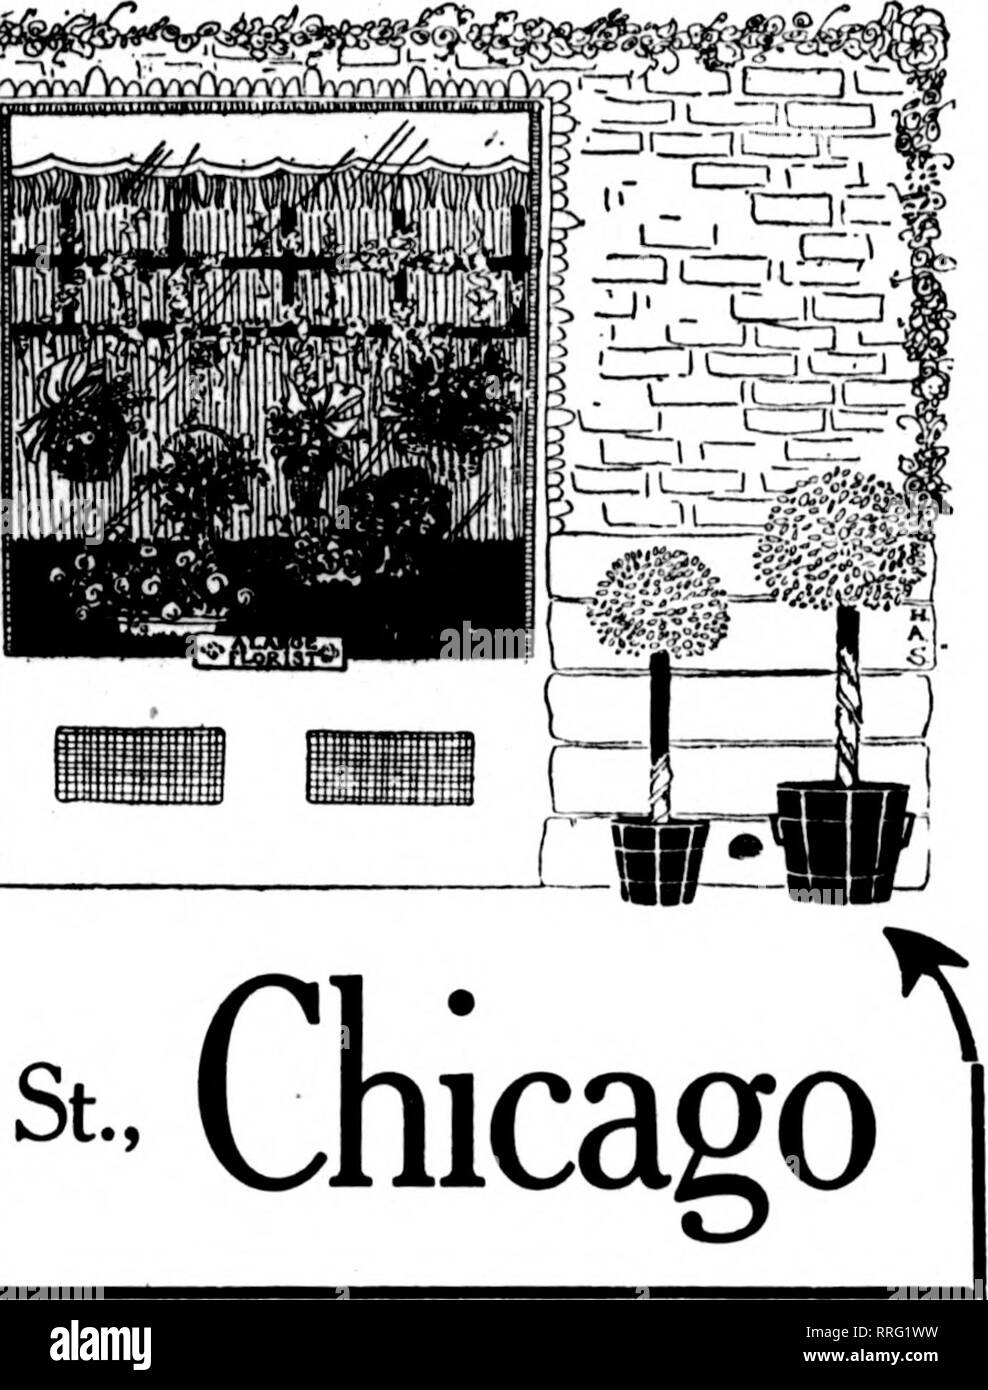 """. Florists' review [microform]. Floriculture. I A. LANGE, East""""M^fe.St' Chicago. HARTFORD, CONNECTICUT Welch's Flower Shop 197 Trumbull Street A. W. Welch Mrs. E. M. Welch HARTFORD.-CONN. Greenhouses: Benton St Stores: 741 Main St 364 Asylum St ?laf F. T. u Order* loliciltj (or all puts ot Connecticut BRIDGEPORT, CONN. James Horan & Son 943 MAIN STREET Largest Growers in this District. MnCBSBS FlObhts' Tii.soaAPH Dxuyxbt. BIDDEFORD, ME. NEAR PORTLAND Hankr F. T. D. CARNATIONS PORTLAND, ME. THE FLOWER SHOP M. E. McOunigle Ck)r. Oak and Free Sts. MANCHESTER, N. H. L D. PHONB MJl-R. H. C. STA - Stock Image"""